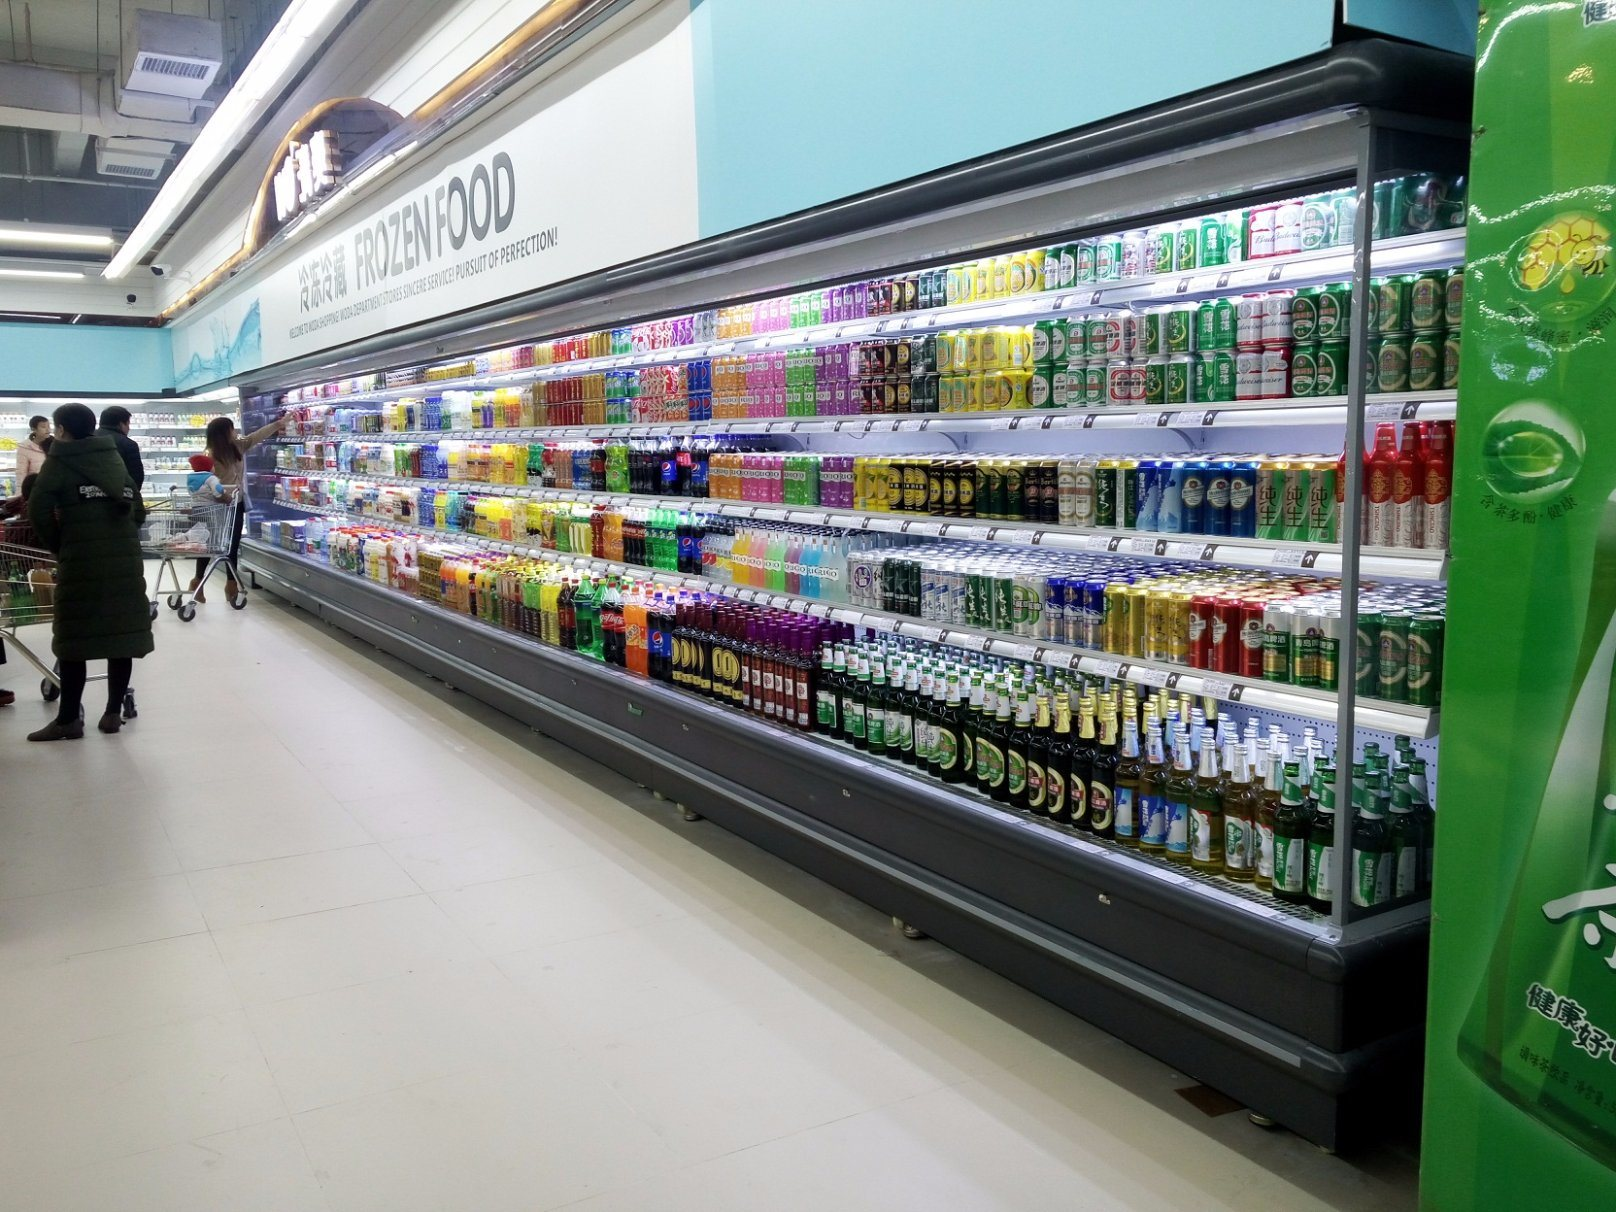 Supermarket Fridge Freezer Refrigerated Display Showcase